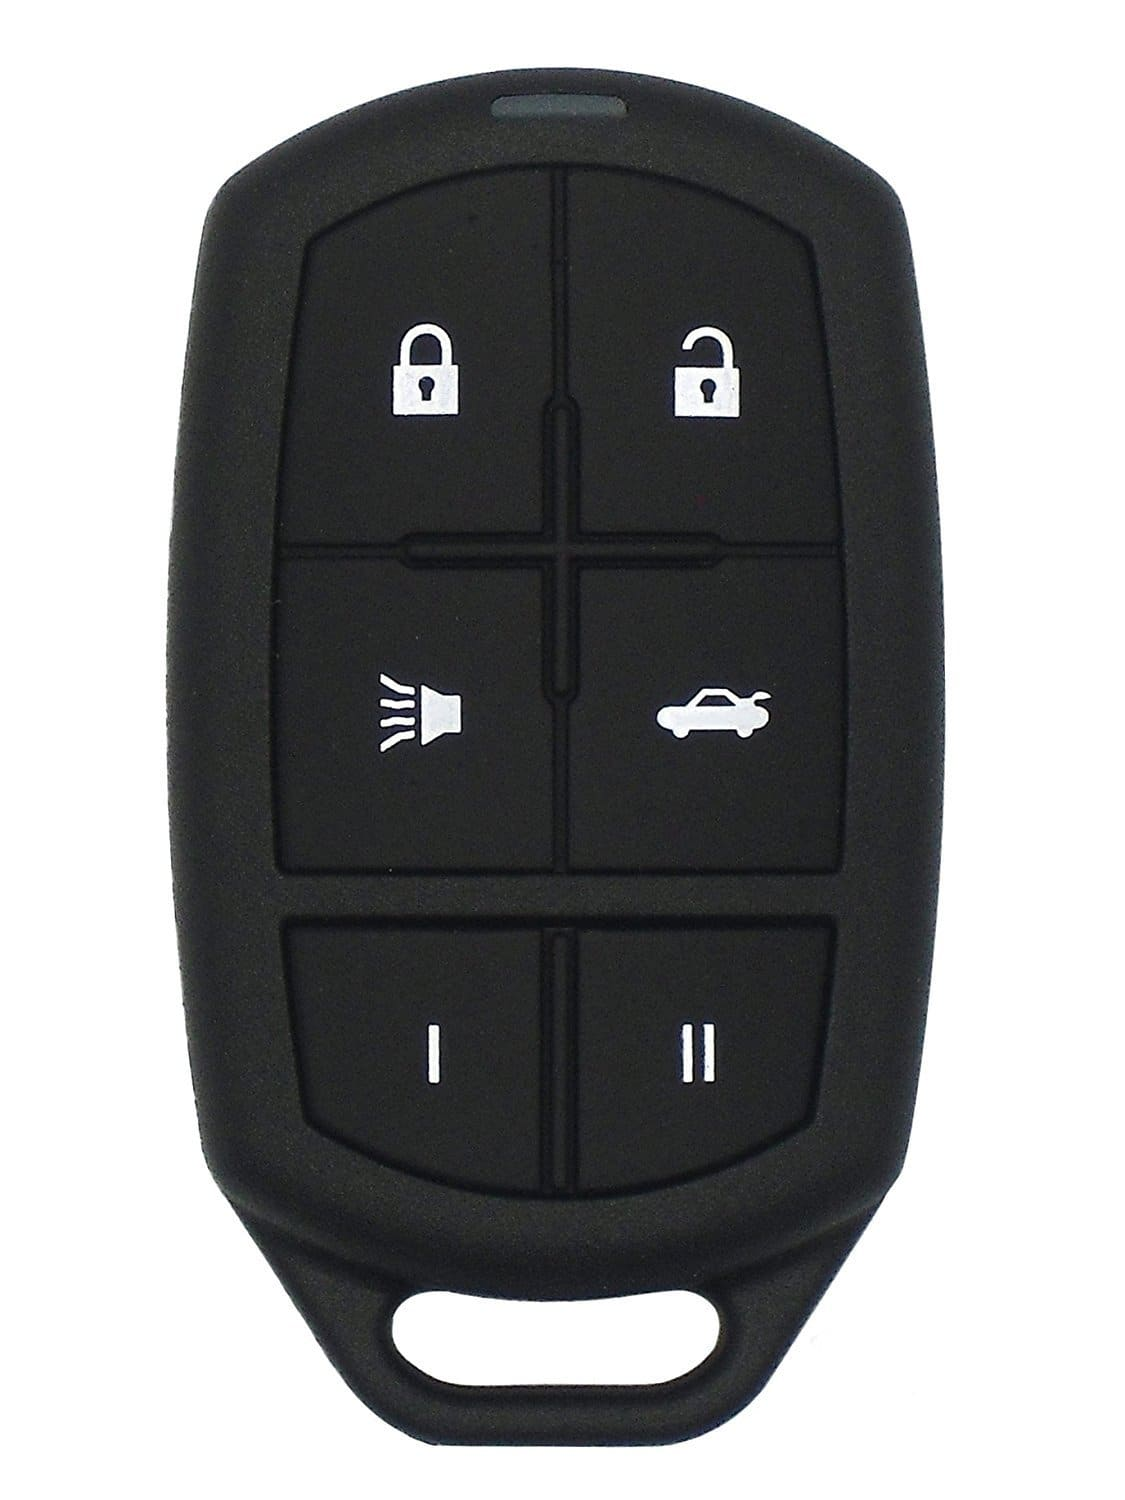 Universal 6 Button Remote For Cars 14.99 Free Shipping $14.99